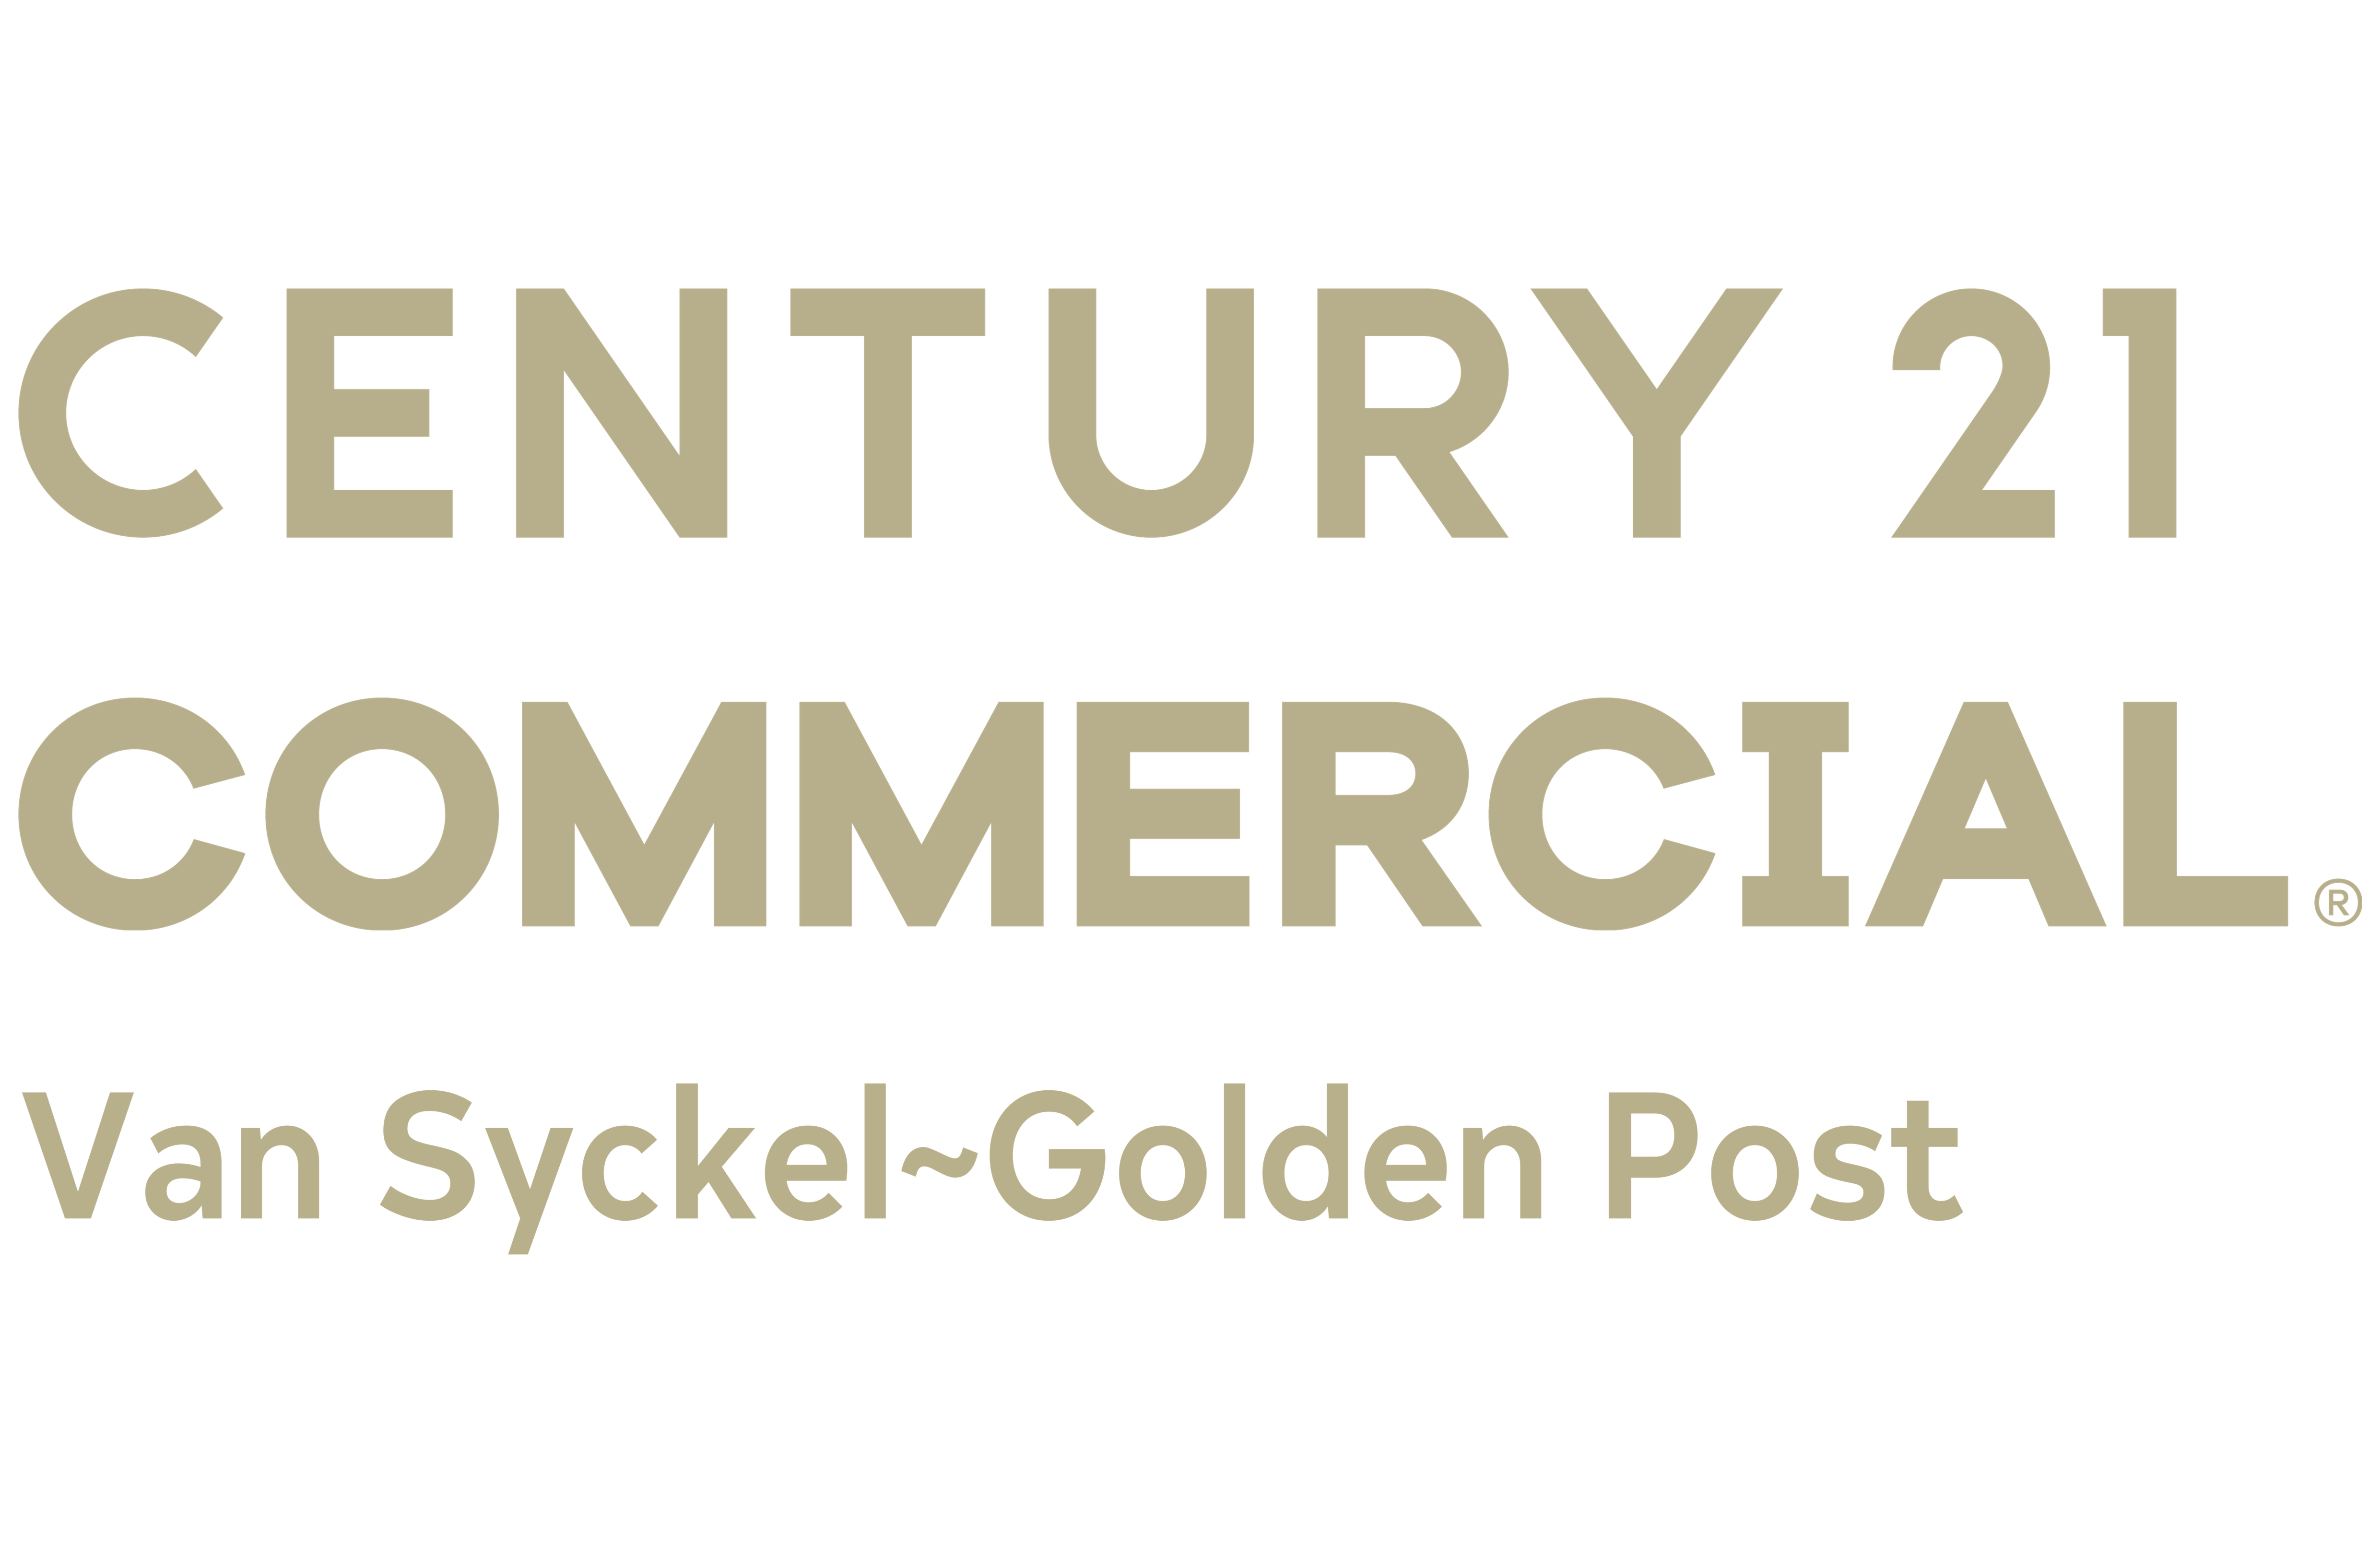 CENTURY 21 Van Syckel~Golden Post